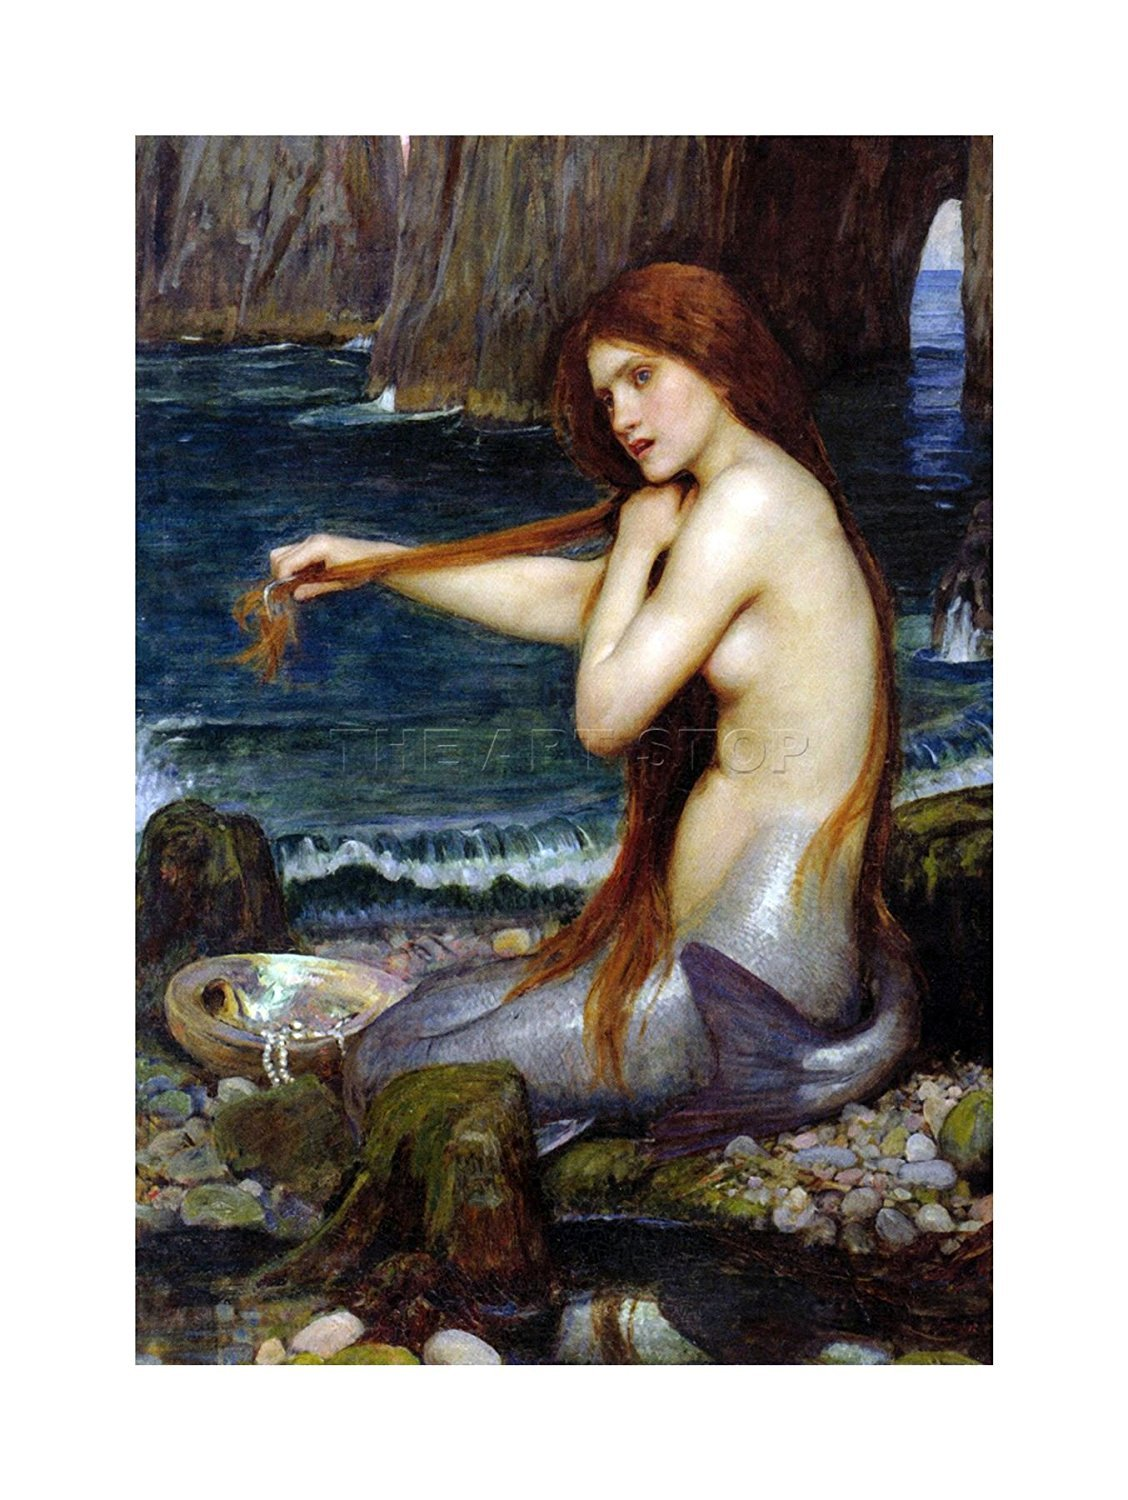 A Mermaid Poster 12x16 inches John William Waterhouse 1900 Mermaids  image 1